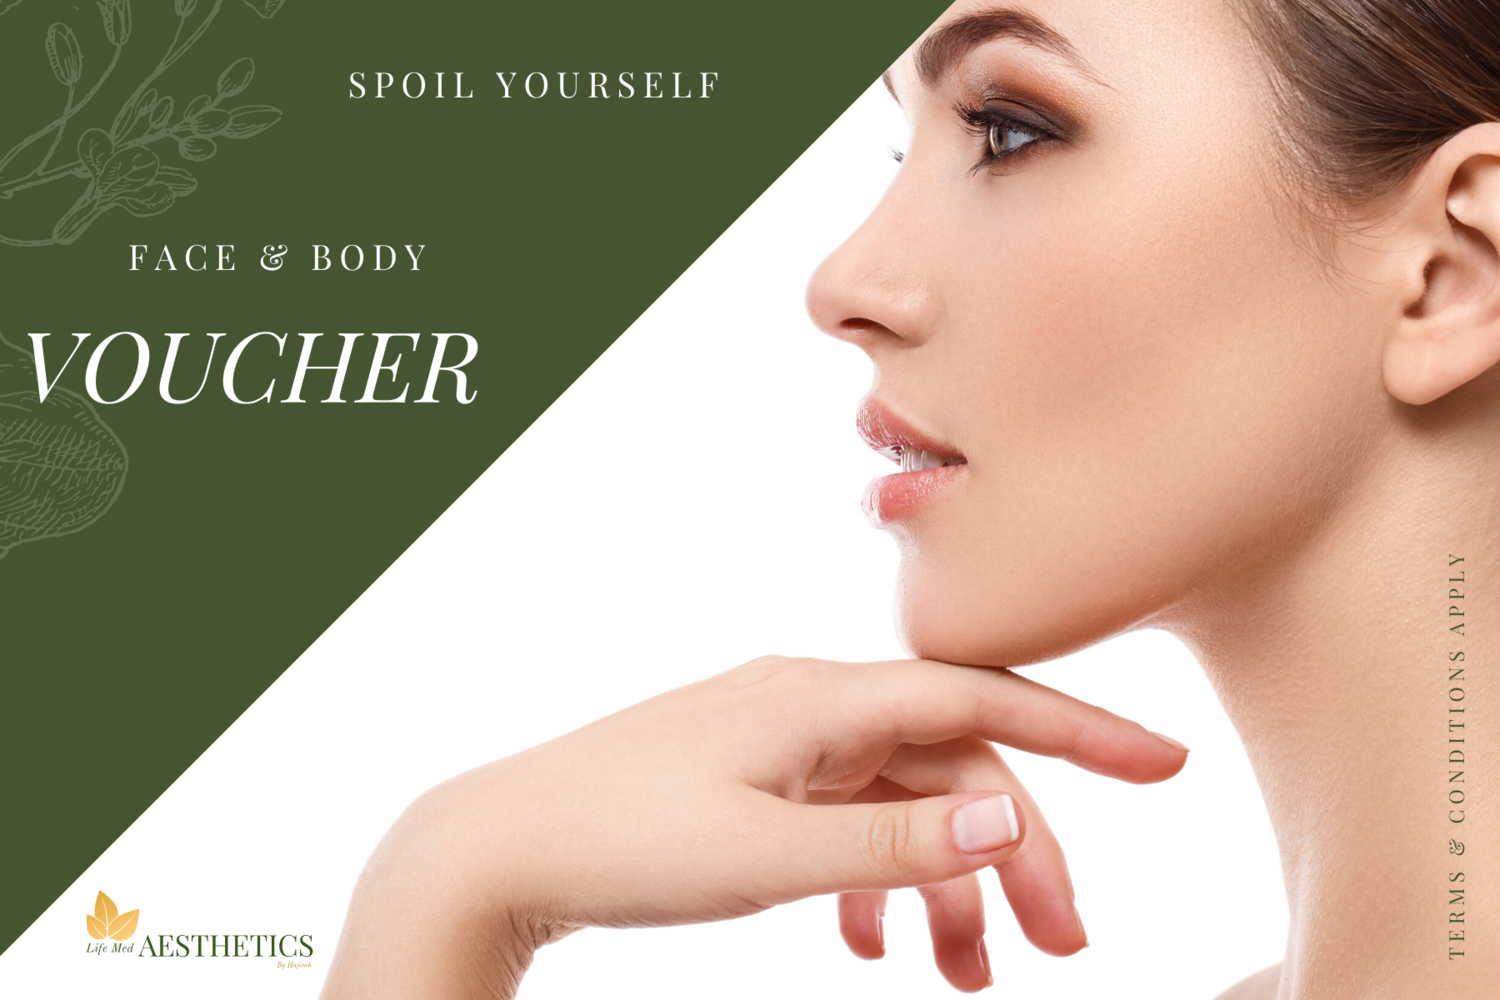 Face & Body Voucher